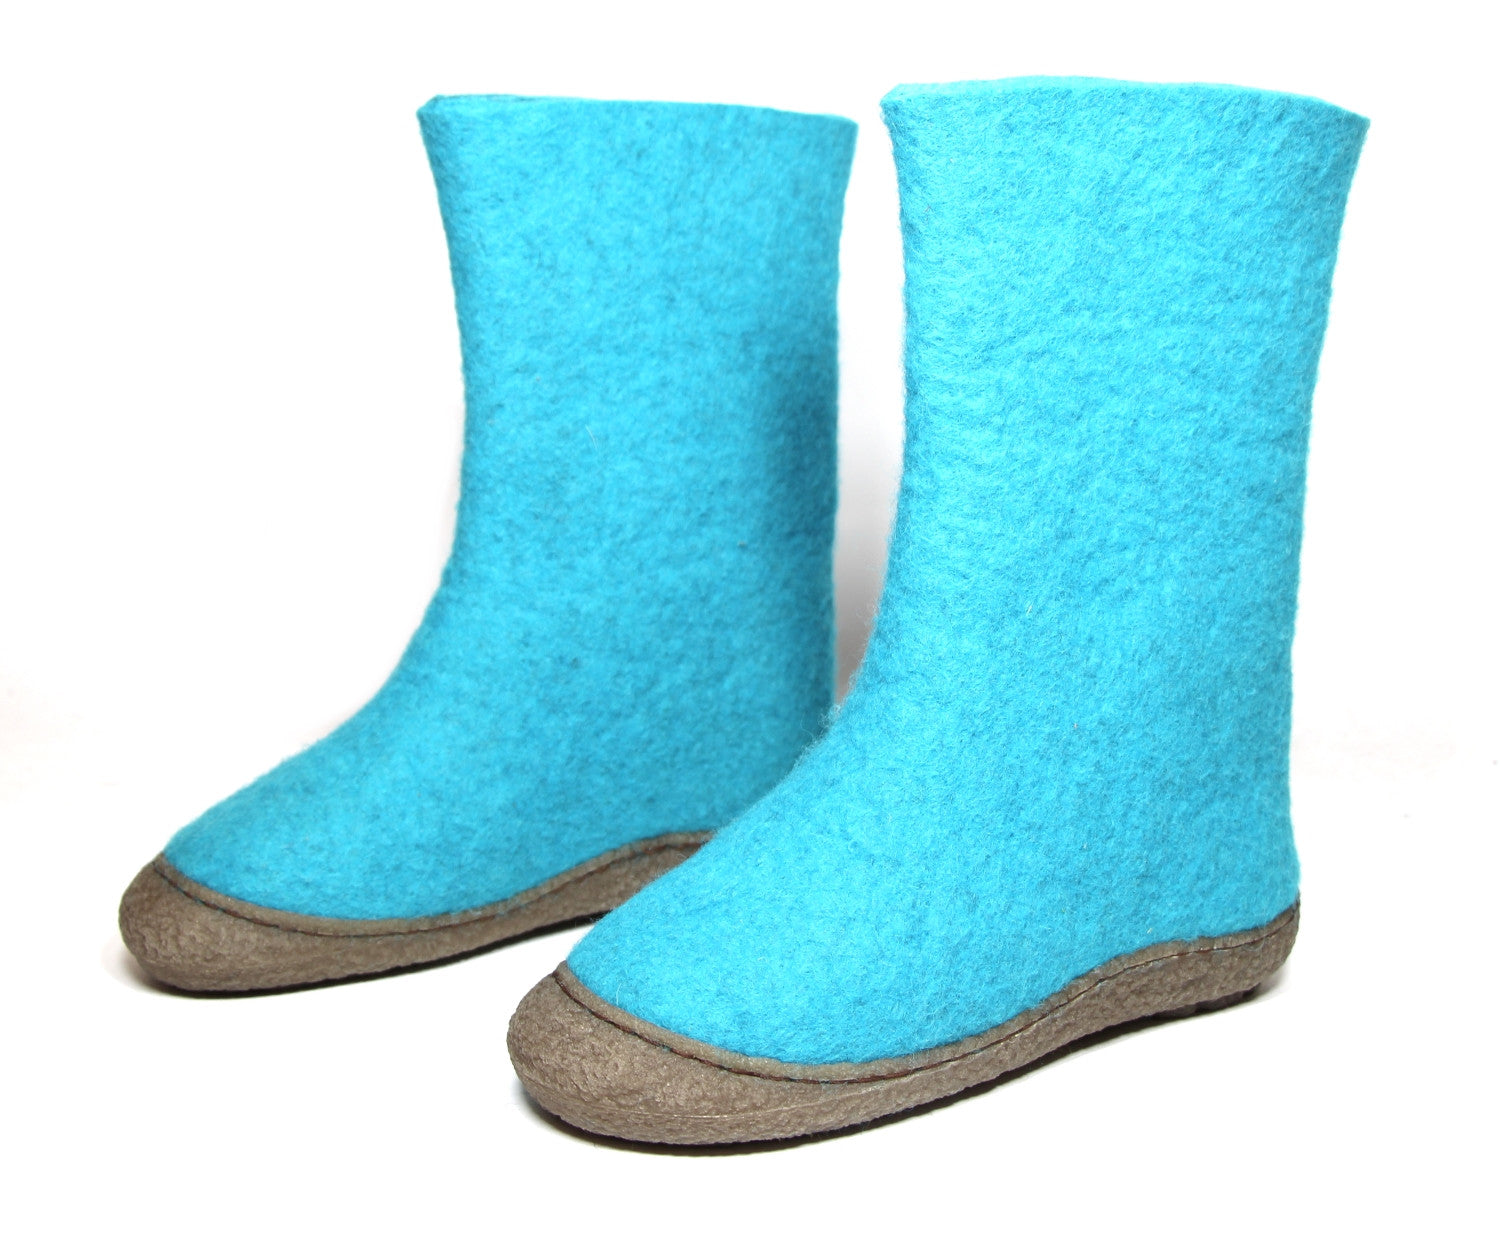 Women's Wool Snow Boots Turquoise